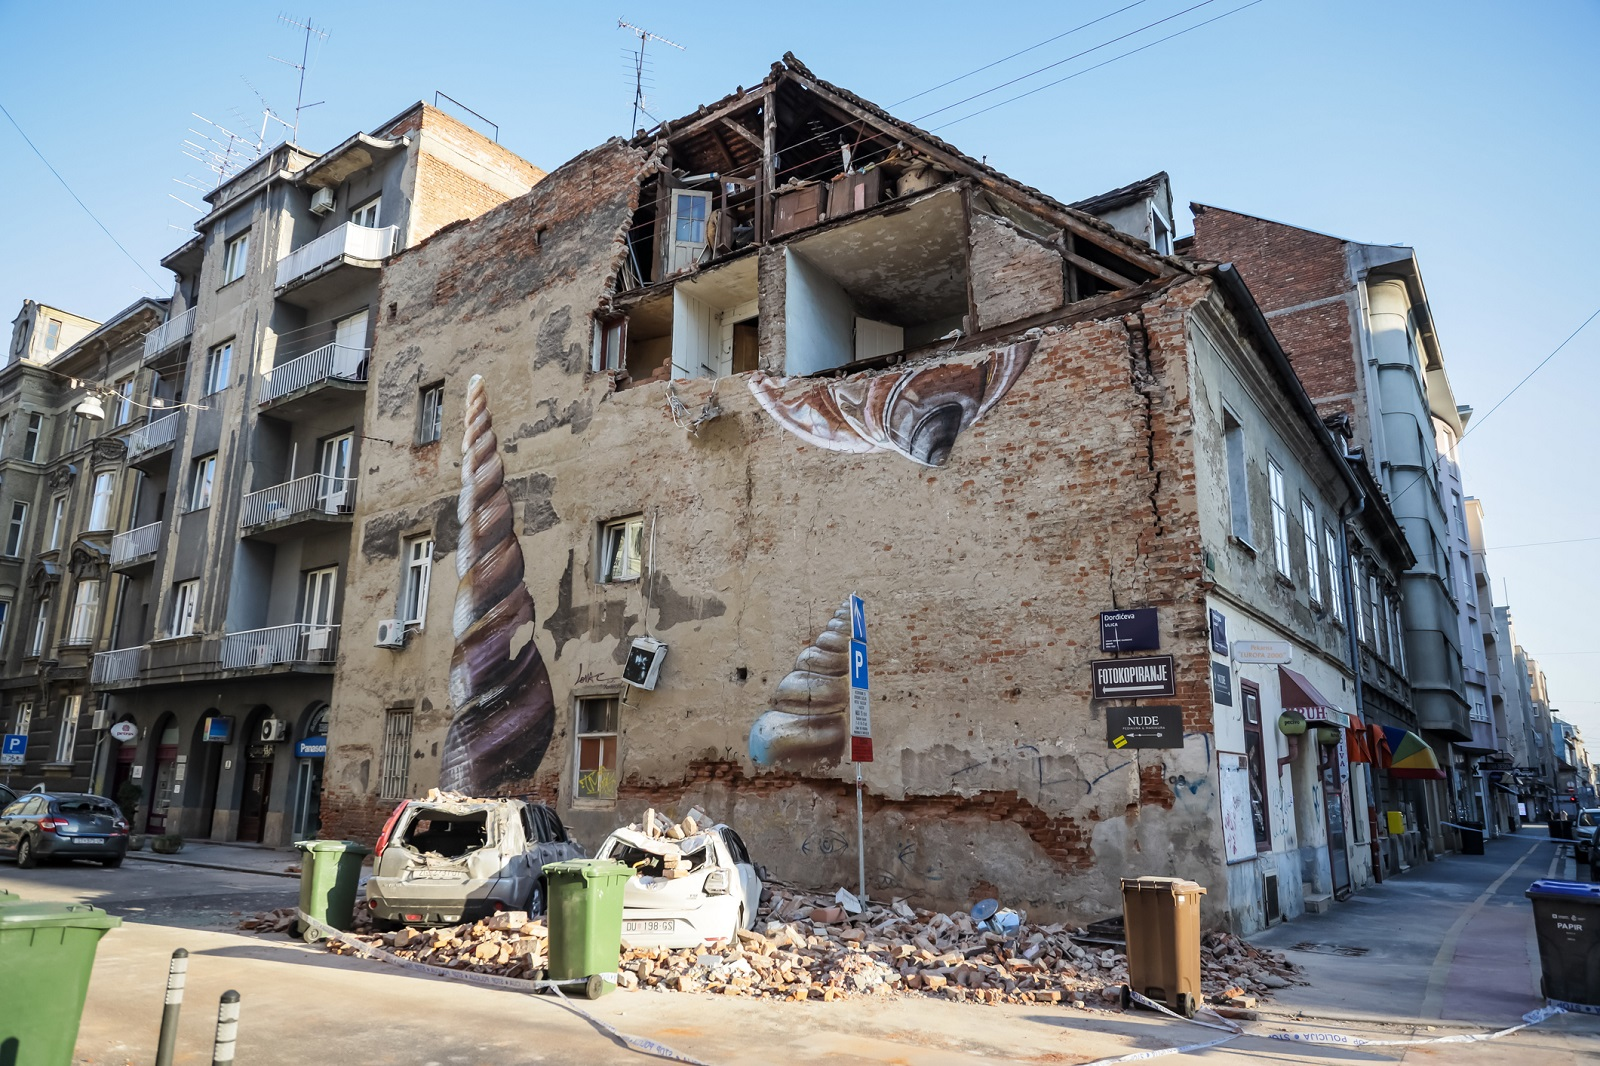 Zagreb, Croatia - March 22, 2020 : In the morning capital of Croatia, Zagreb has been hit by the magnitude of the earthquake 5.5 per Richter. Cars have been destroyed by fallen parts of the building.